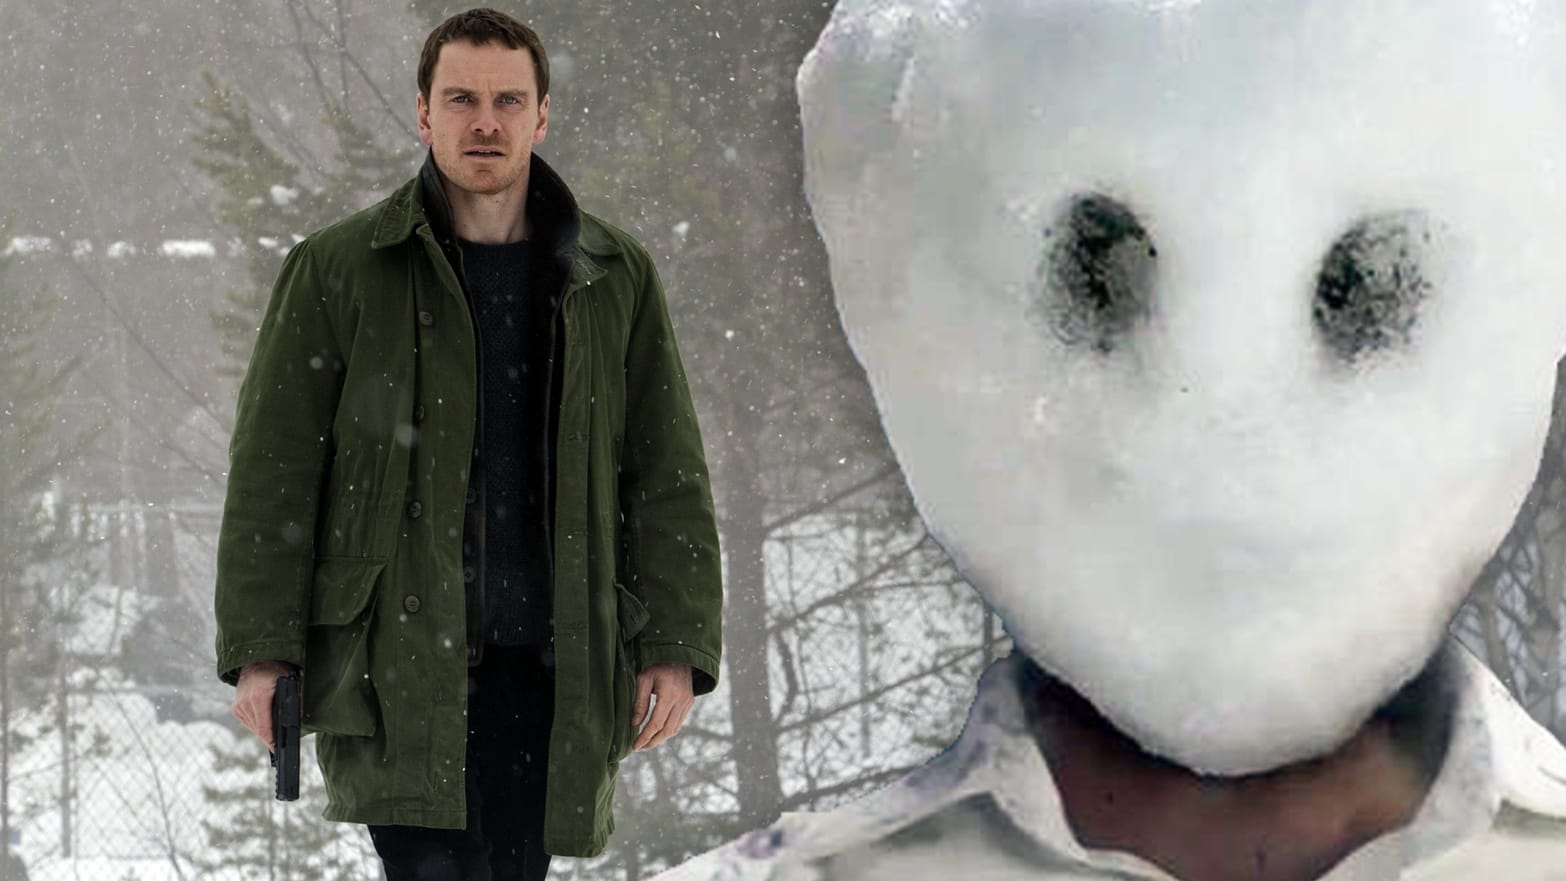 Madisons Headless Snowman As Big As >> The Snowman Is The Most Unintentionally Hilarious Movie Of The Year